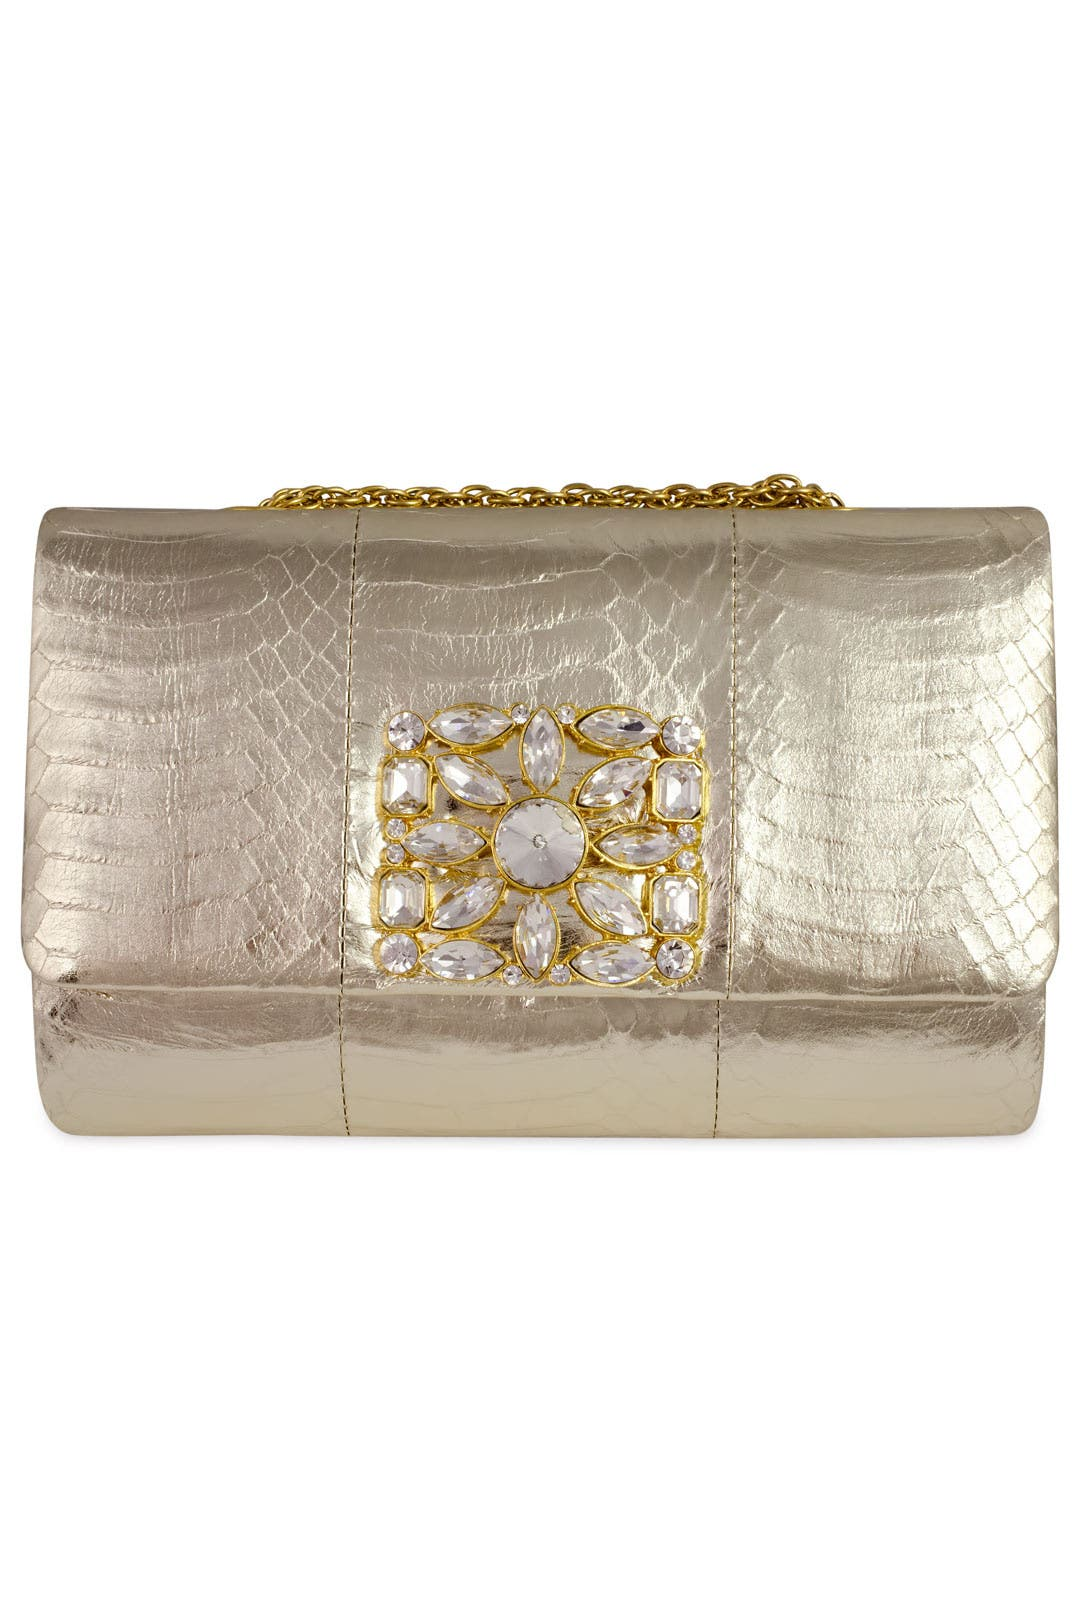 Corrine Gold Snake Clutch by Badgley Mischka Handbags